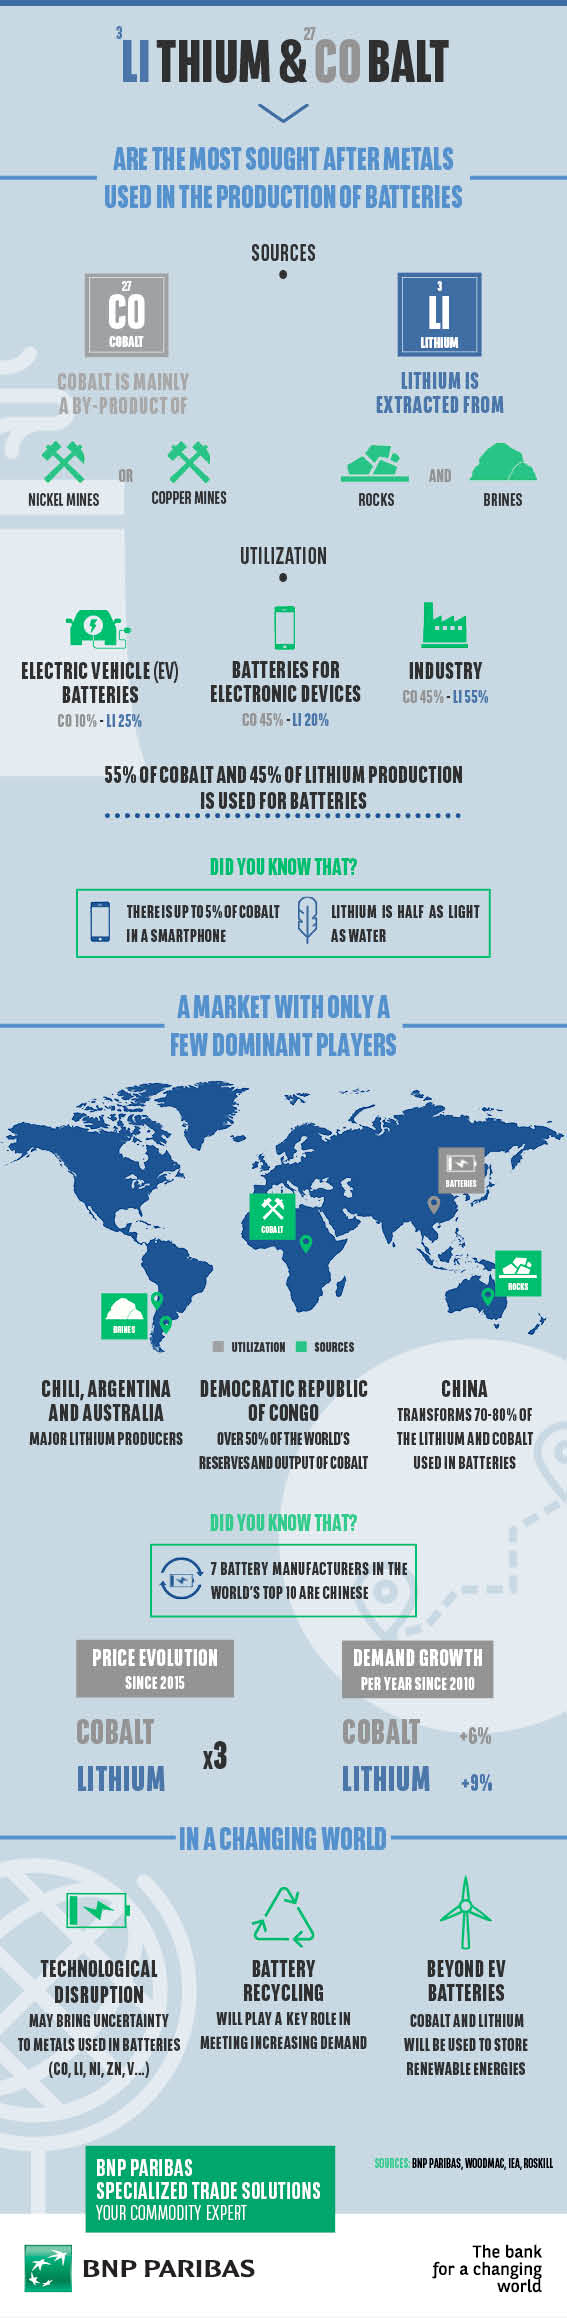 lithium and cobalt infographic